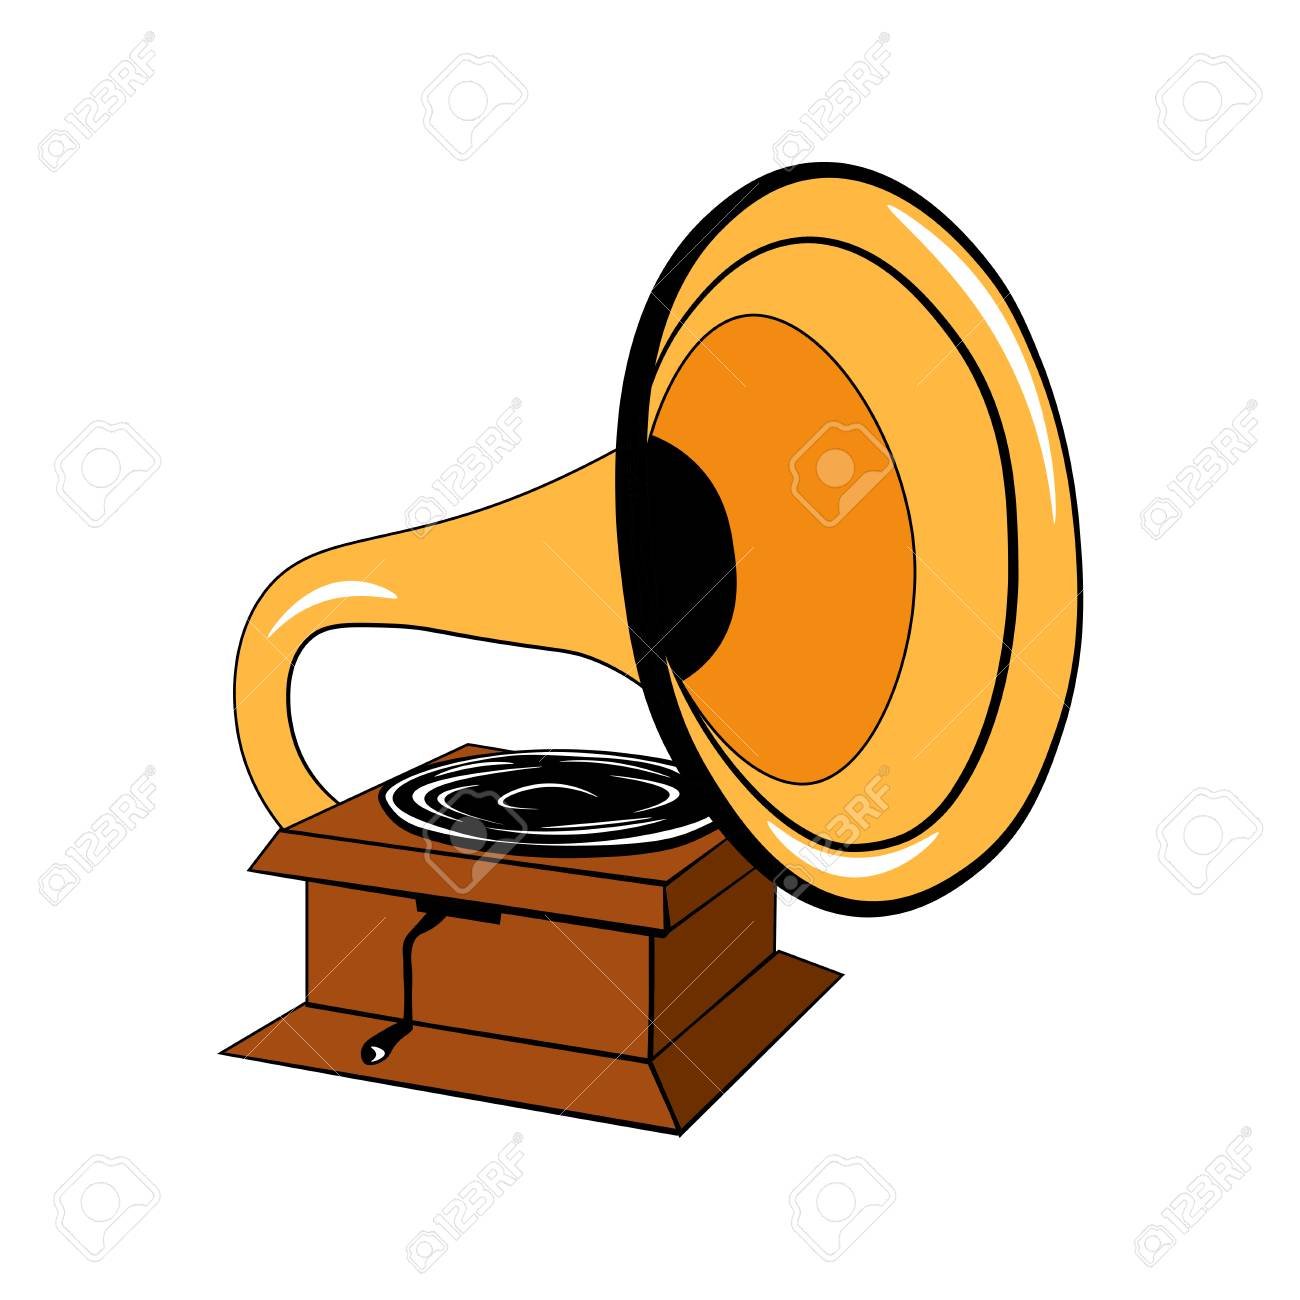 gramophone vector illustration isolated on white background royalty free cliparts vectors and stock illustration image 66655711 gramophone vector illustration isolated on white background